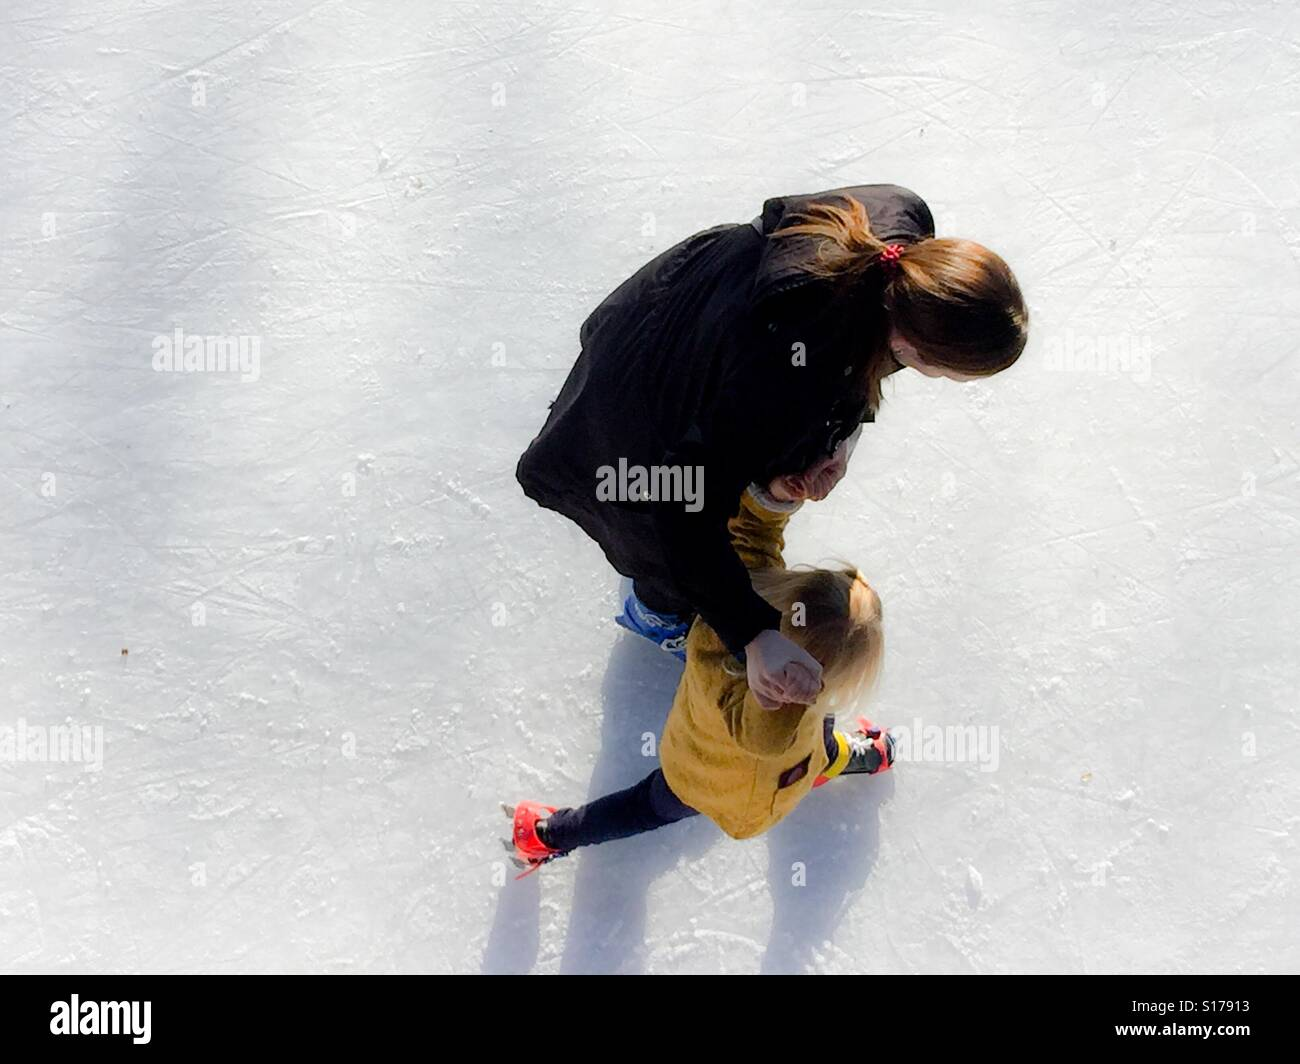 Mother teaches child ice skating - Stock Image